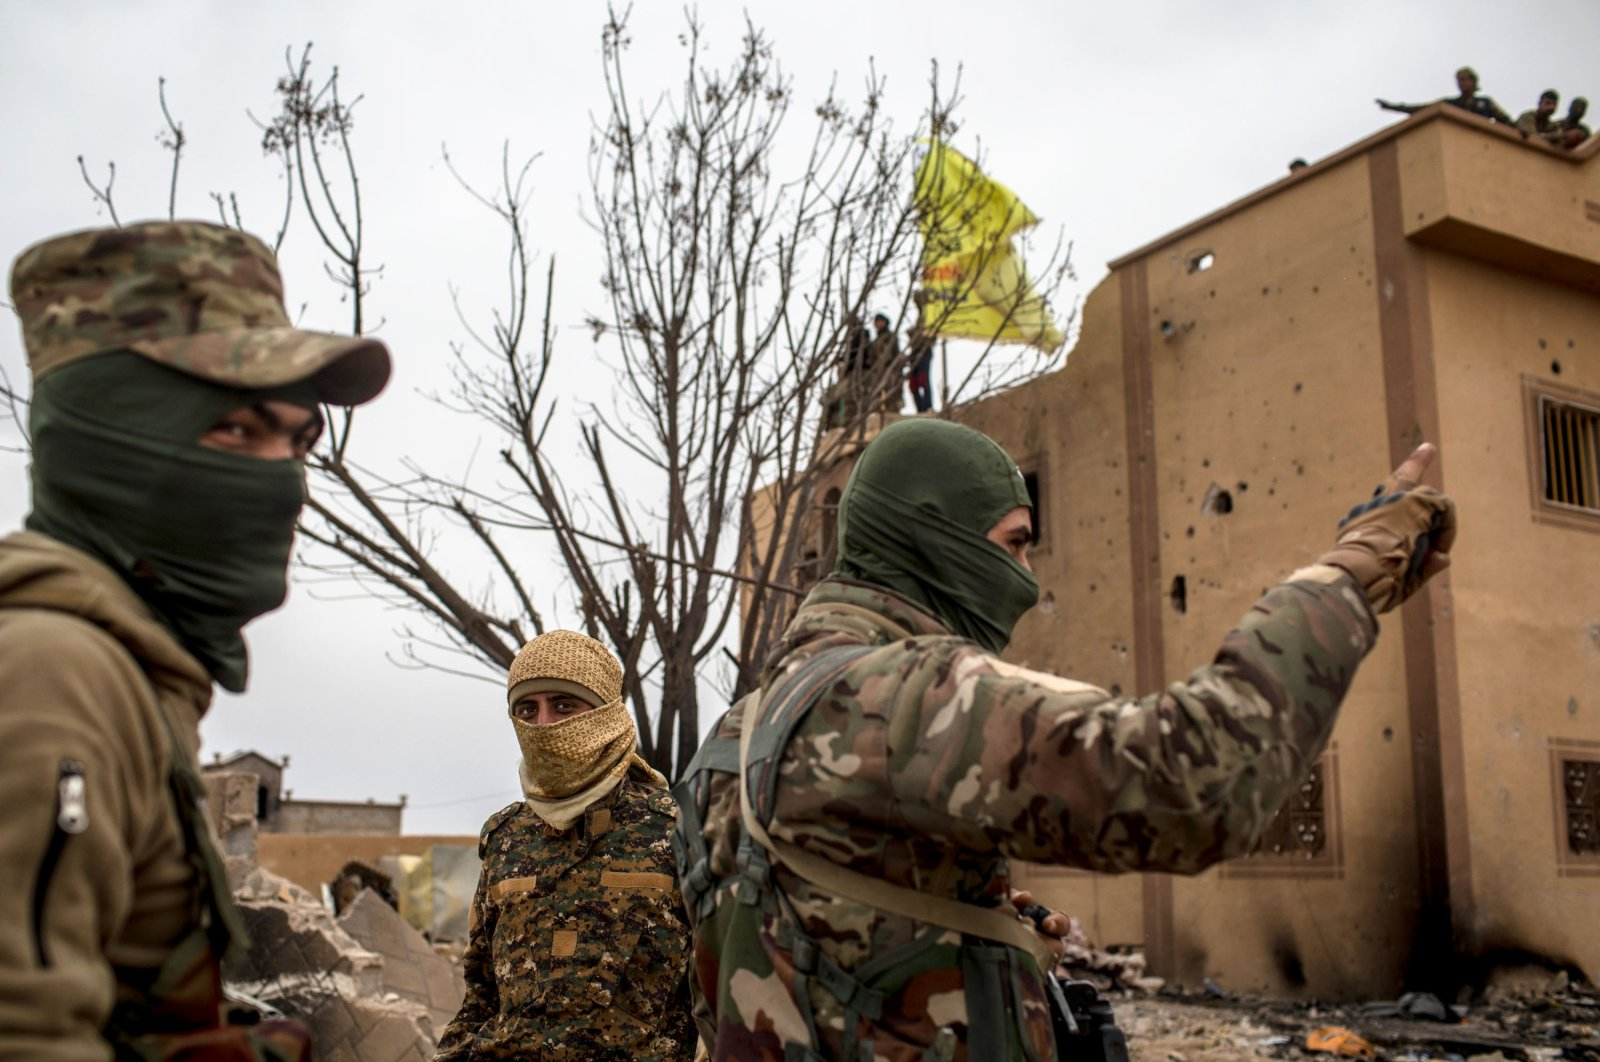 YPG/PKK fighters are seen in front of a building at a position on March 24, 2019, in Baghouz, Syria. (Getty Images)